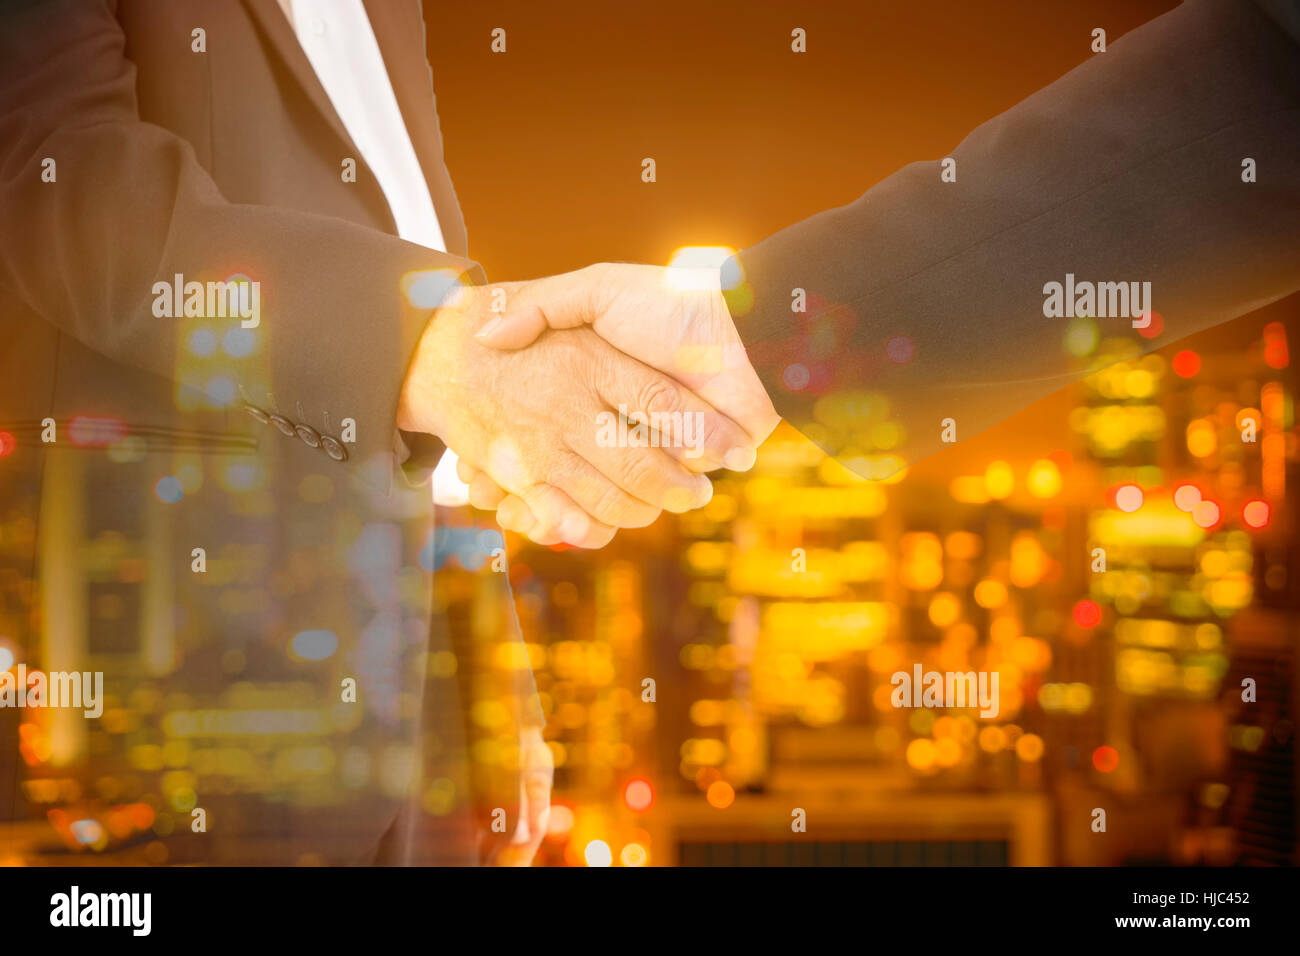 double exposure of commitment businessman and city bokeh light - can use to display or montage on product - Stock Image